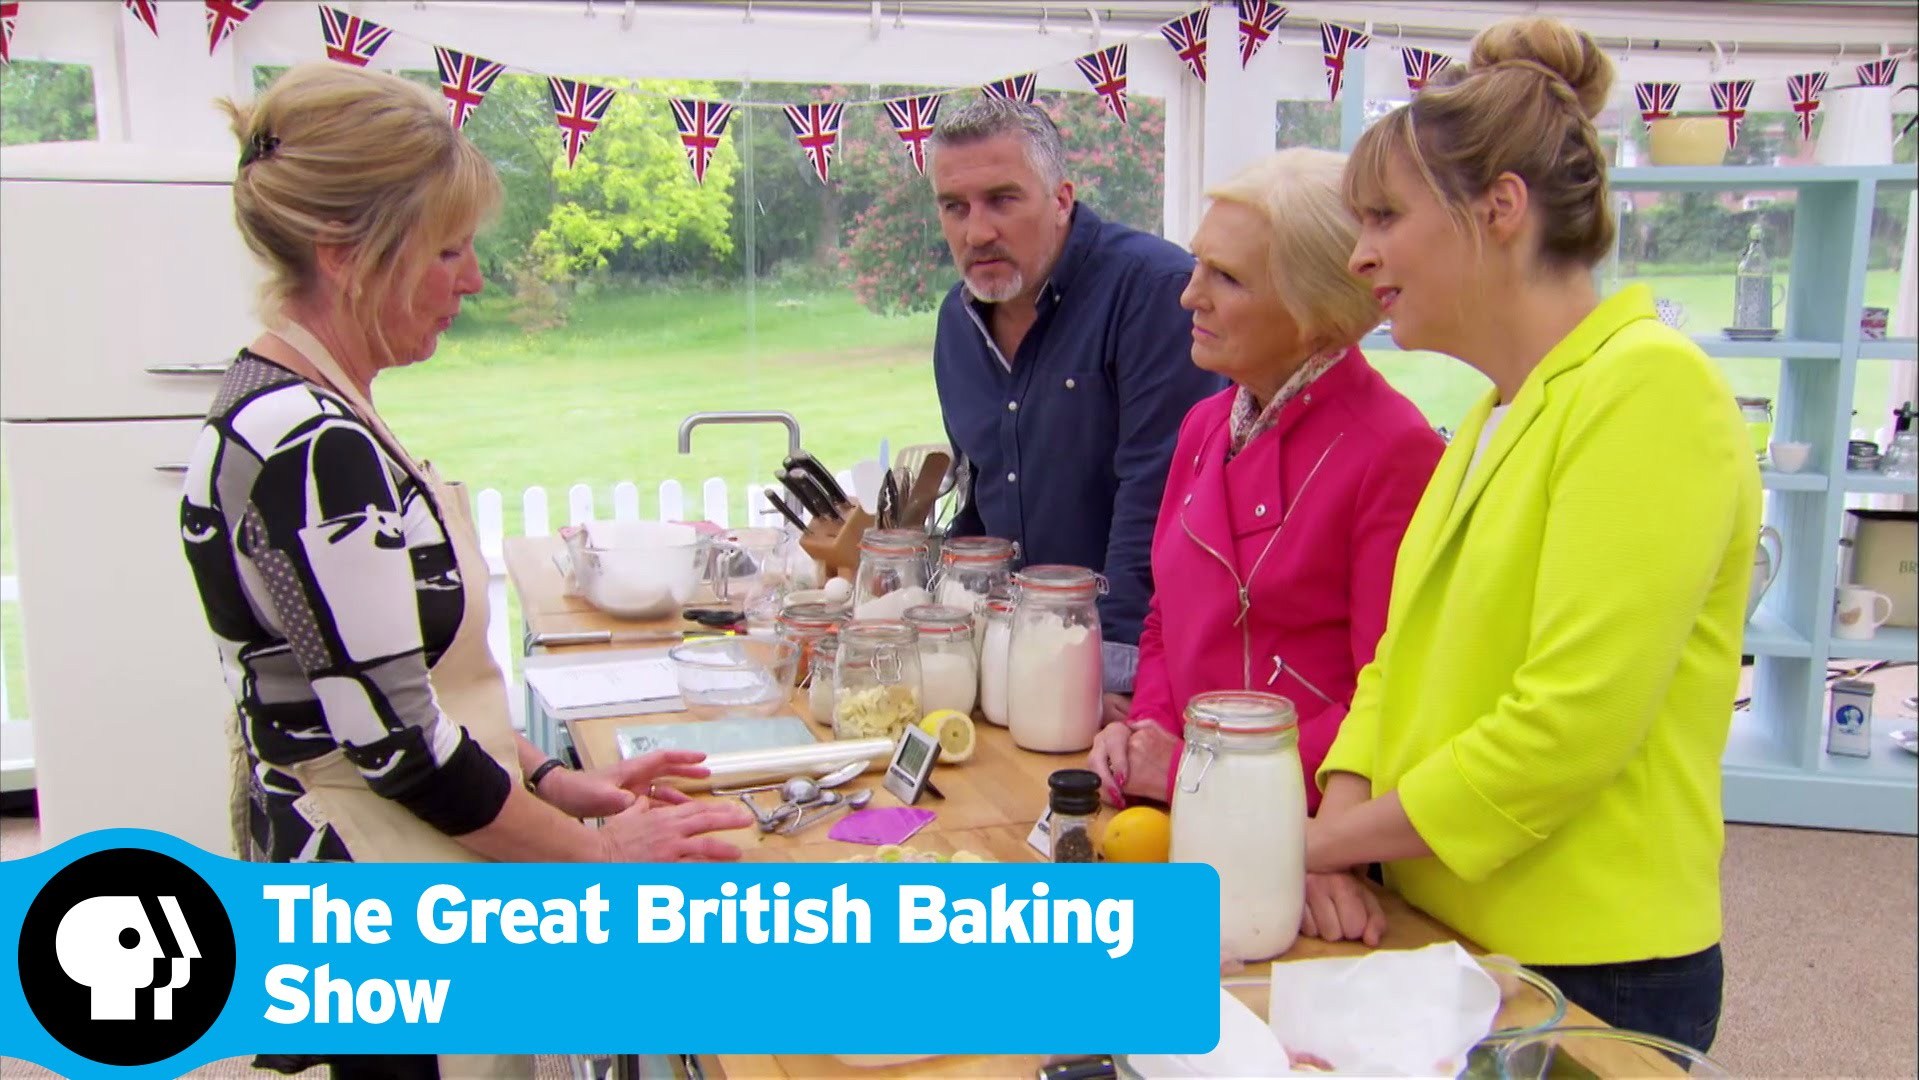 The Great British Baking Show - Fridays 9 p.m.